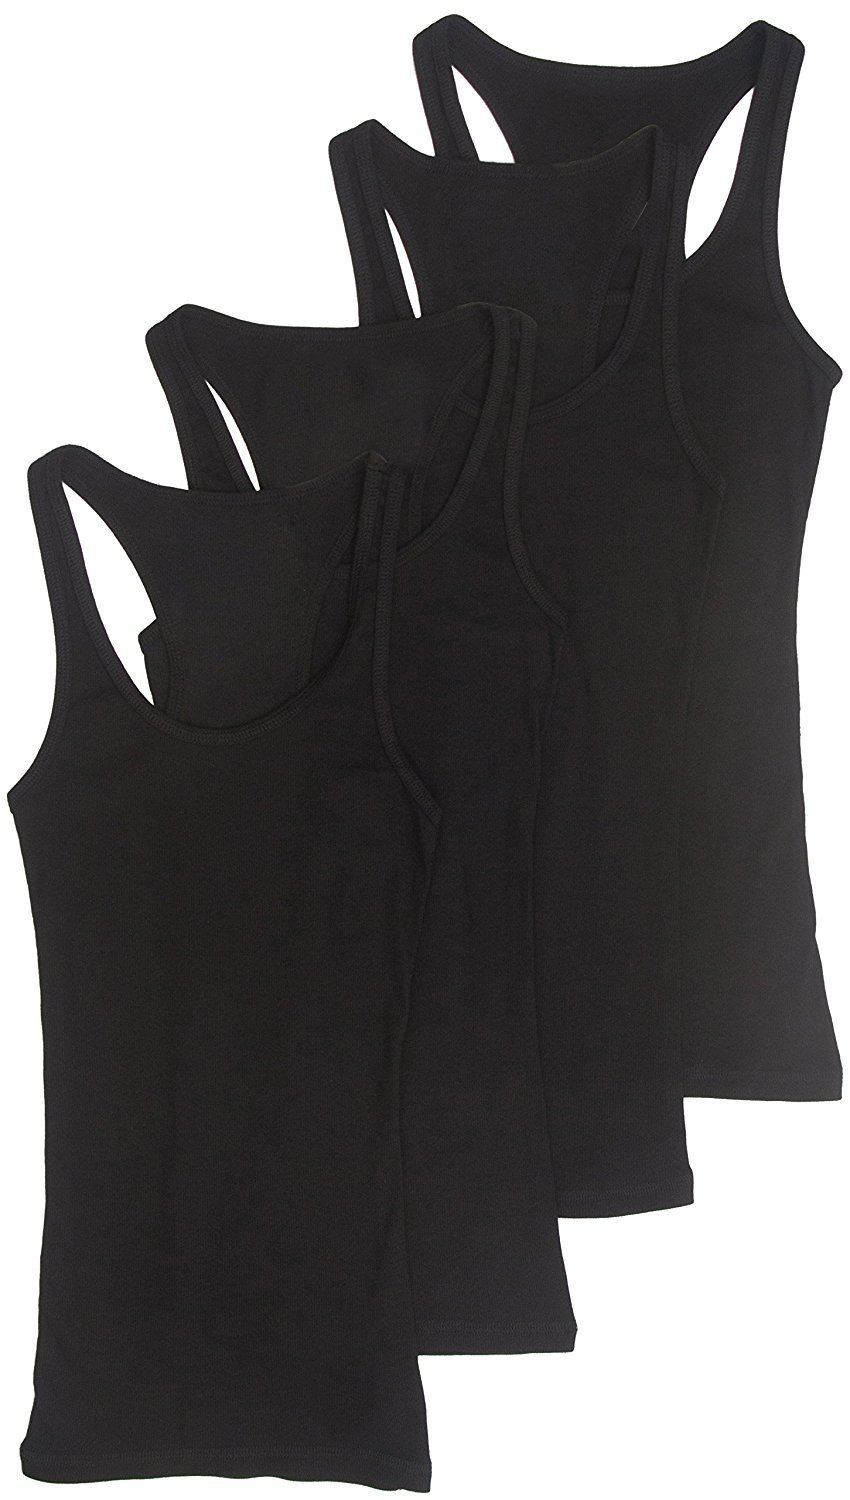 4 Pack Zenana Women's Racerback Tank Top Large Black, Black, Black, Black